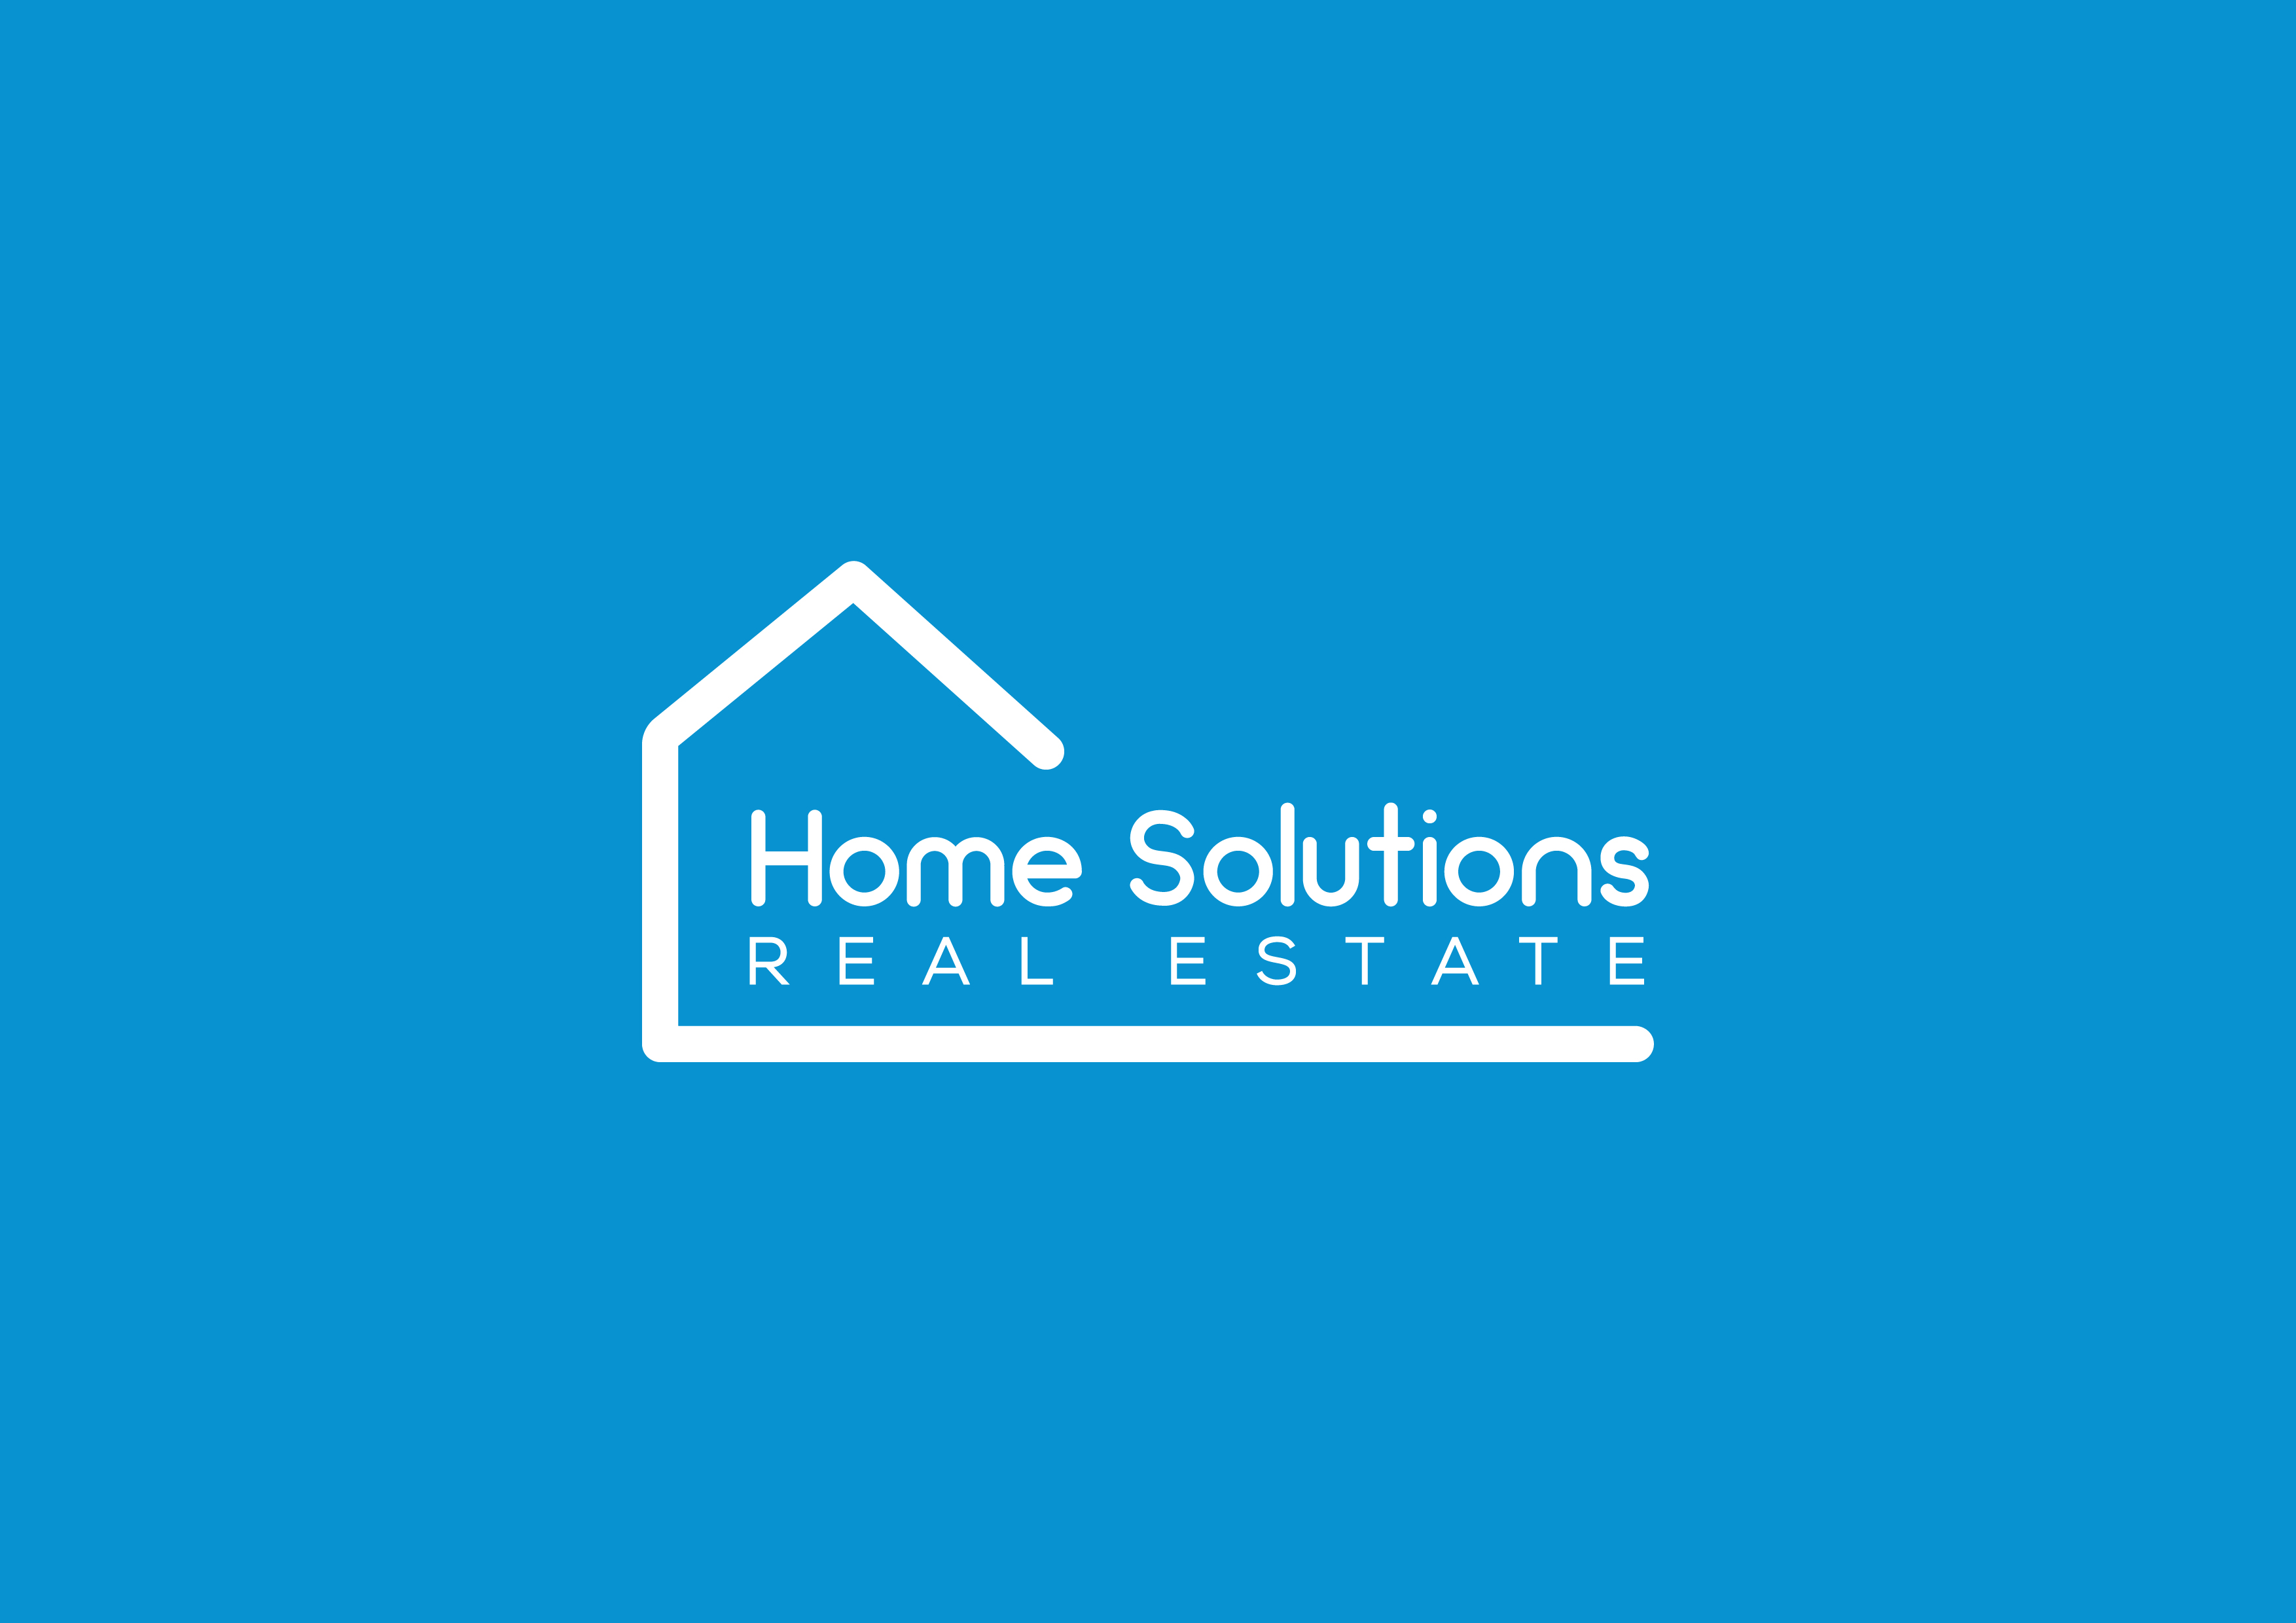 Home Solutions Real Estate logo